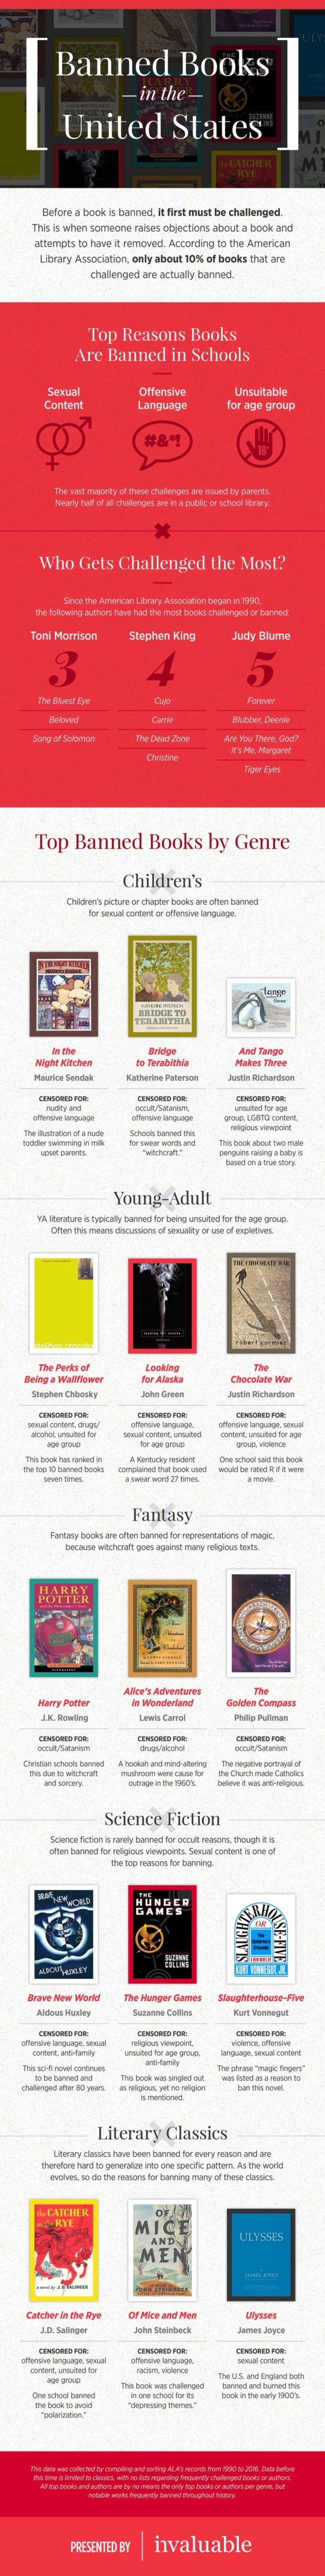 Banned and challenged books in the United States #infographic